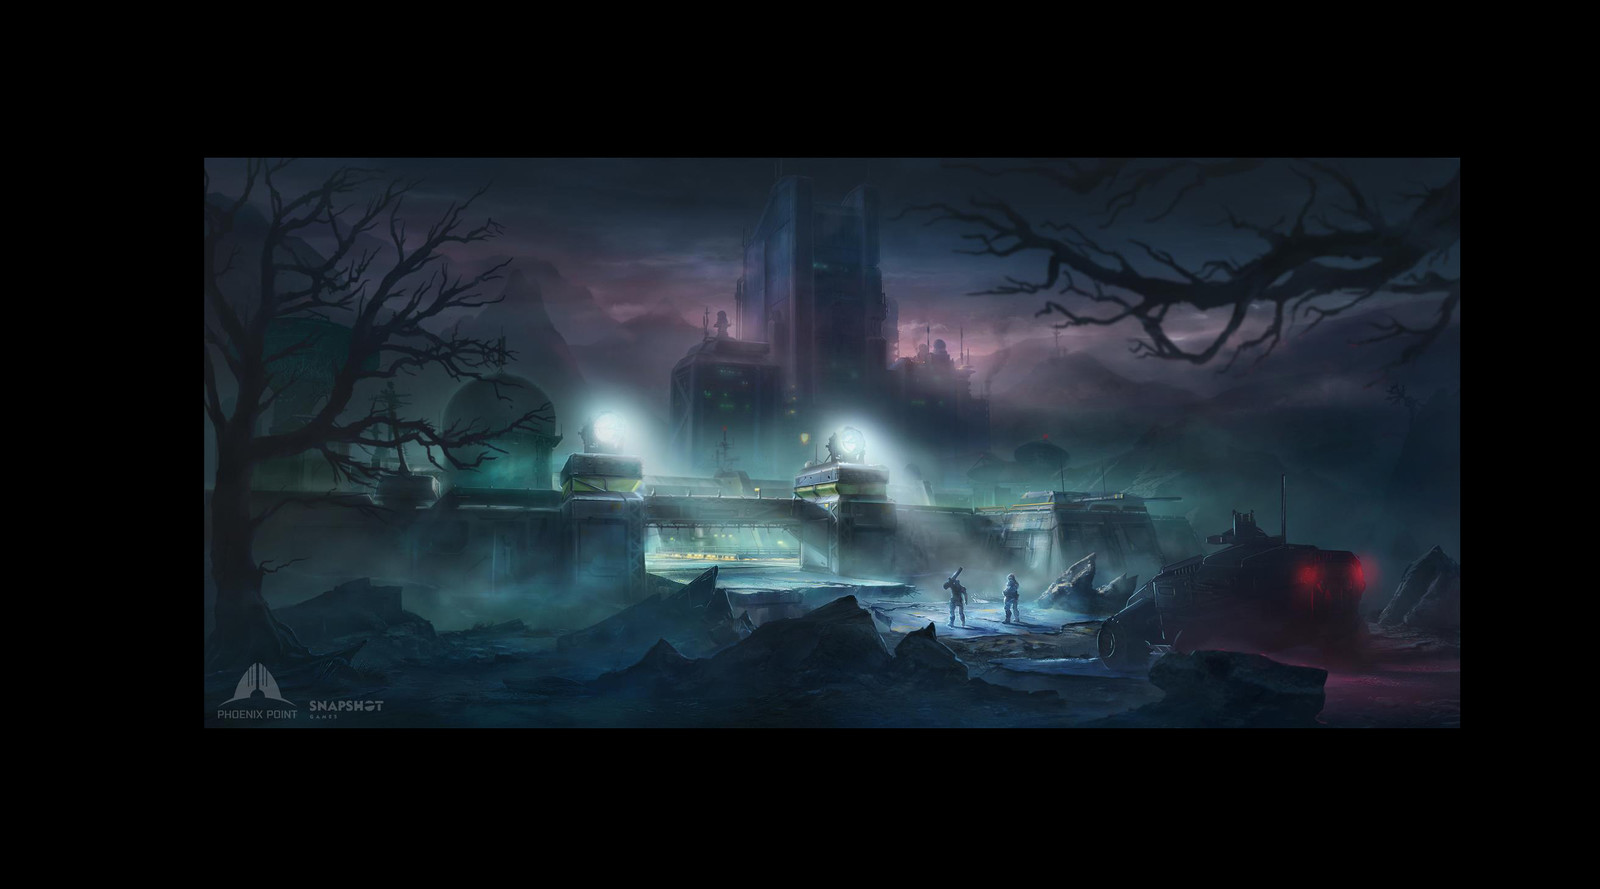 Phoenix Point ,Concept art (game demo level)